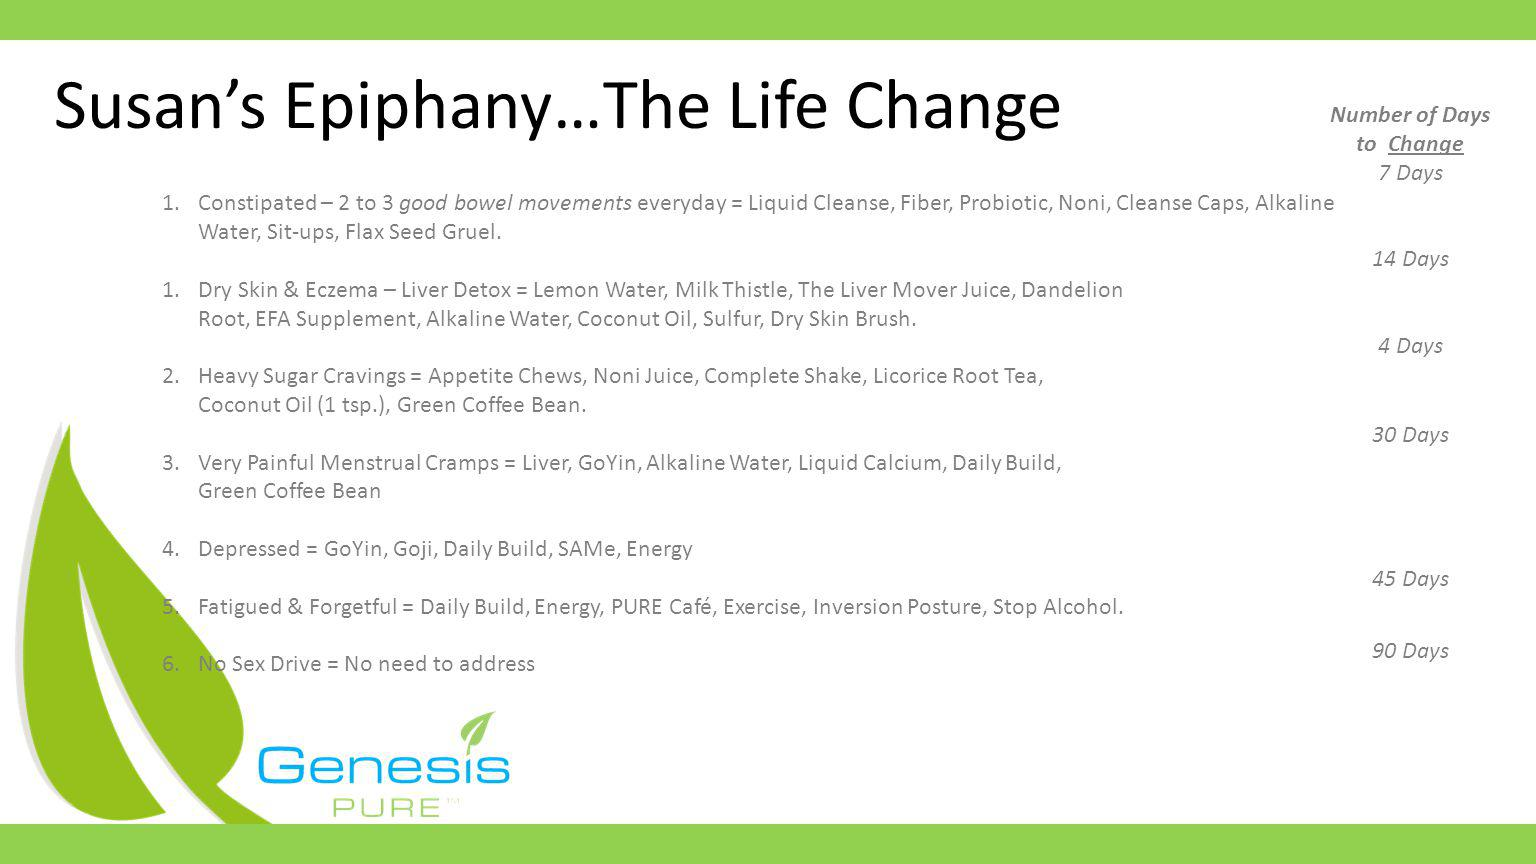 Susans Epiphany…The Life Change 1.Constipated – 2 to 3 good bowel movements everyday = Liquid Cleanse, Fiber, Probiotic, Noni, Cleanse Caps, Alkaline Water, Sit-ups, Flax Seed Gruel.